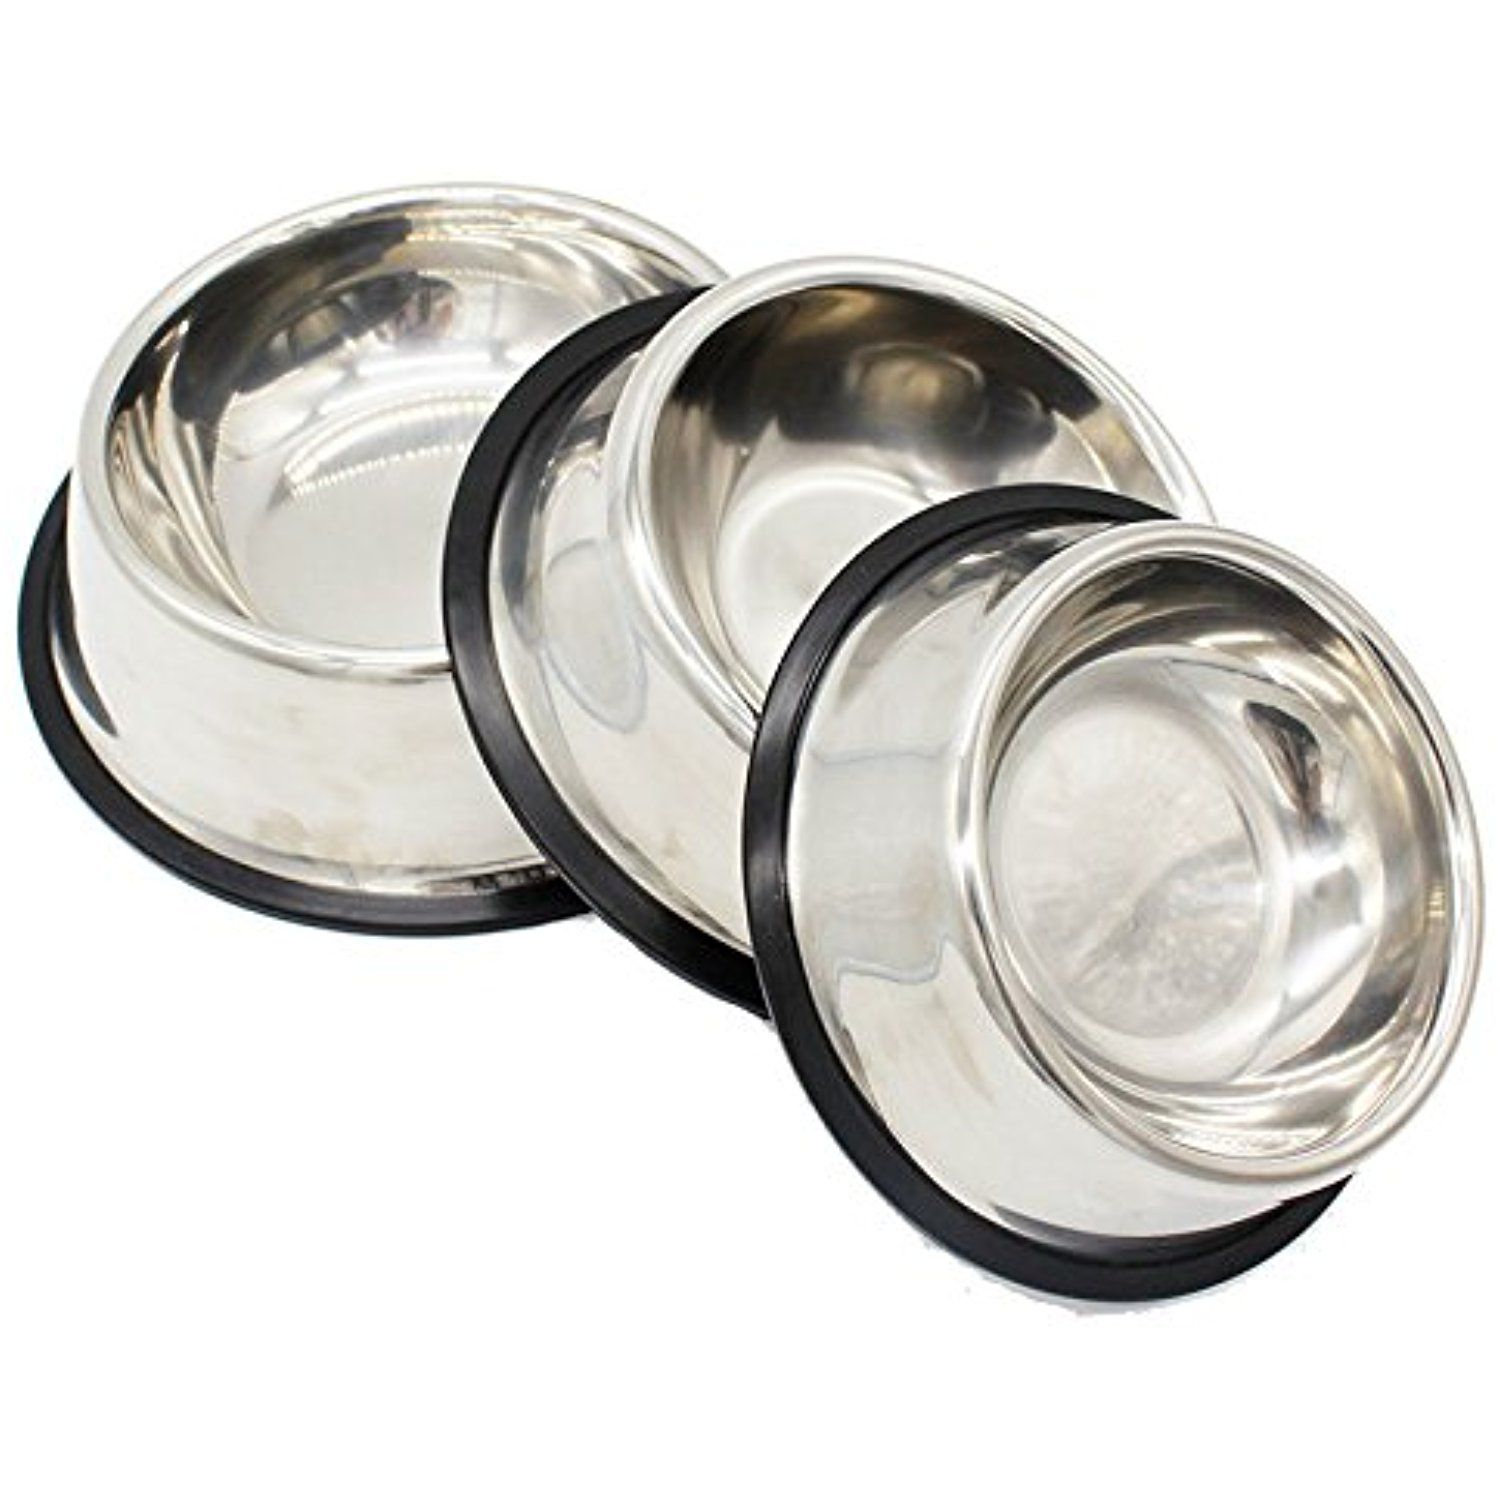 becky dog bowl set of2 for dog premium stainless steel pet bowl for